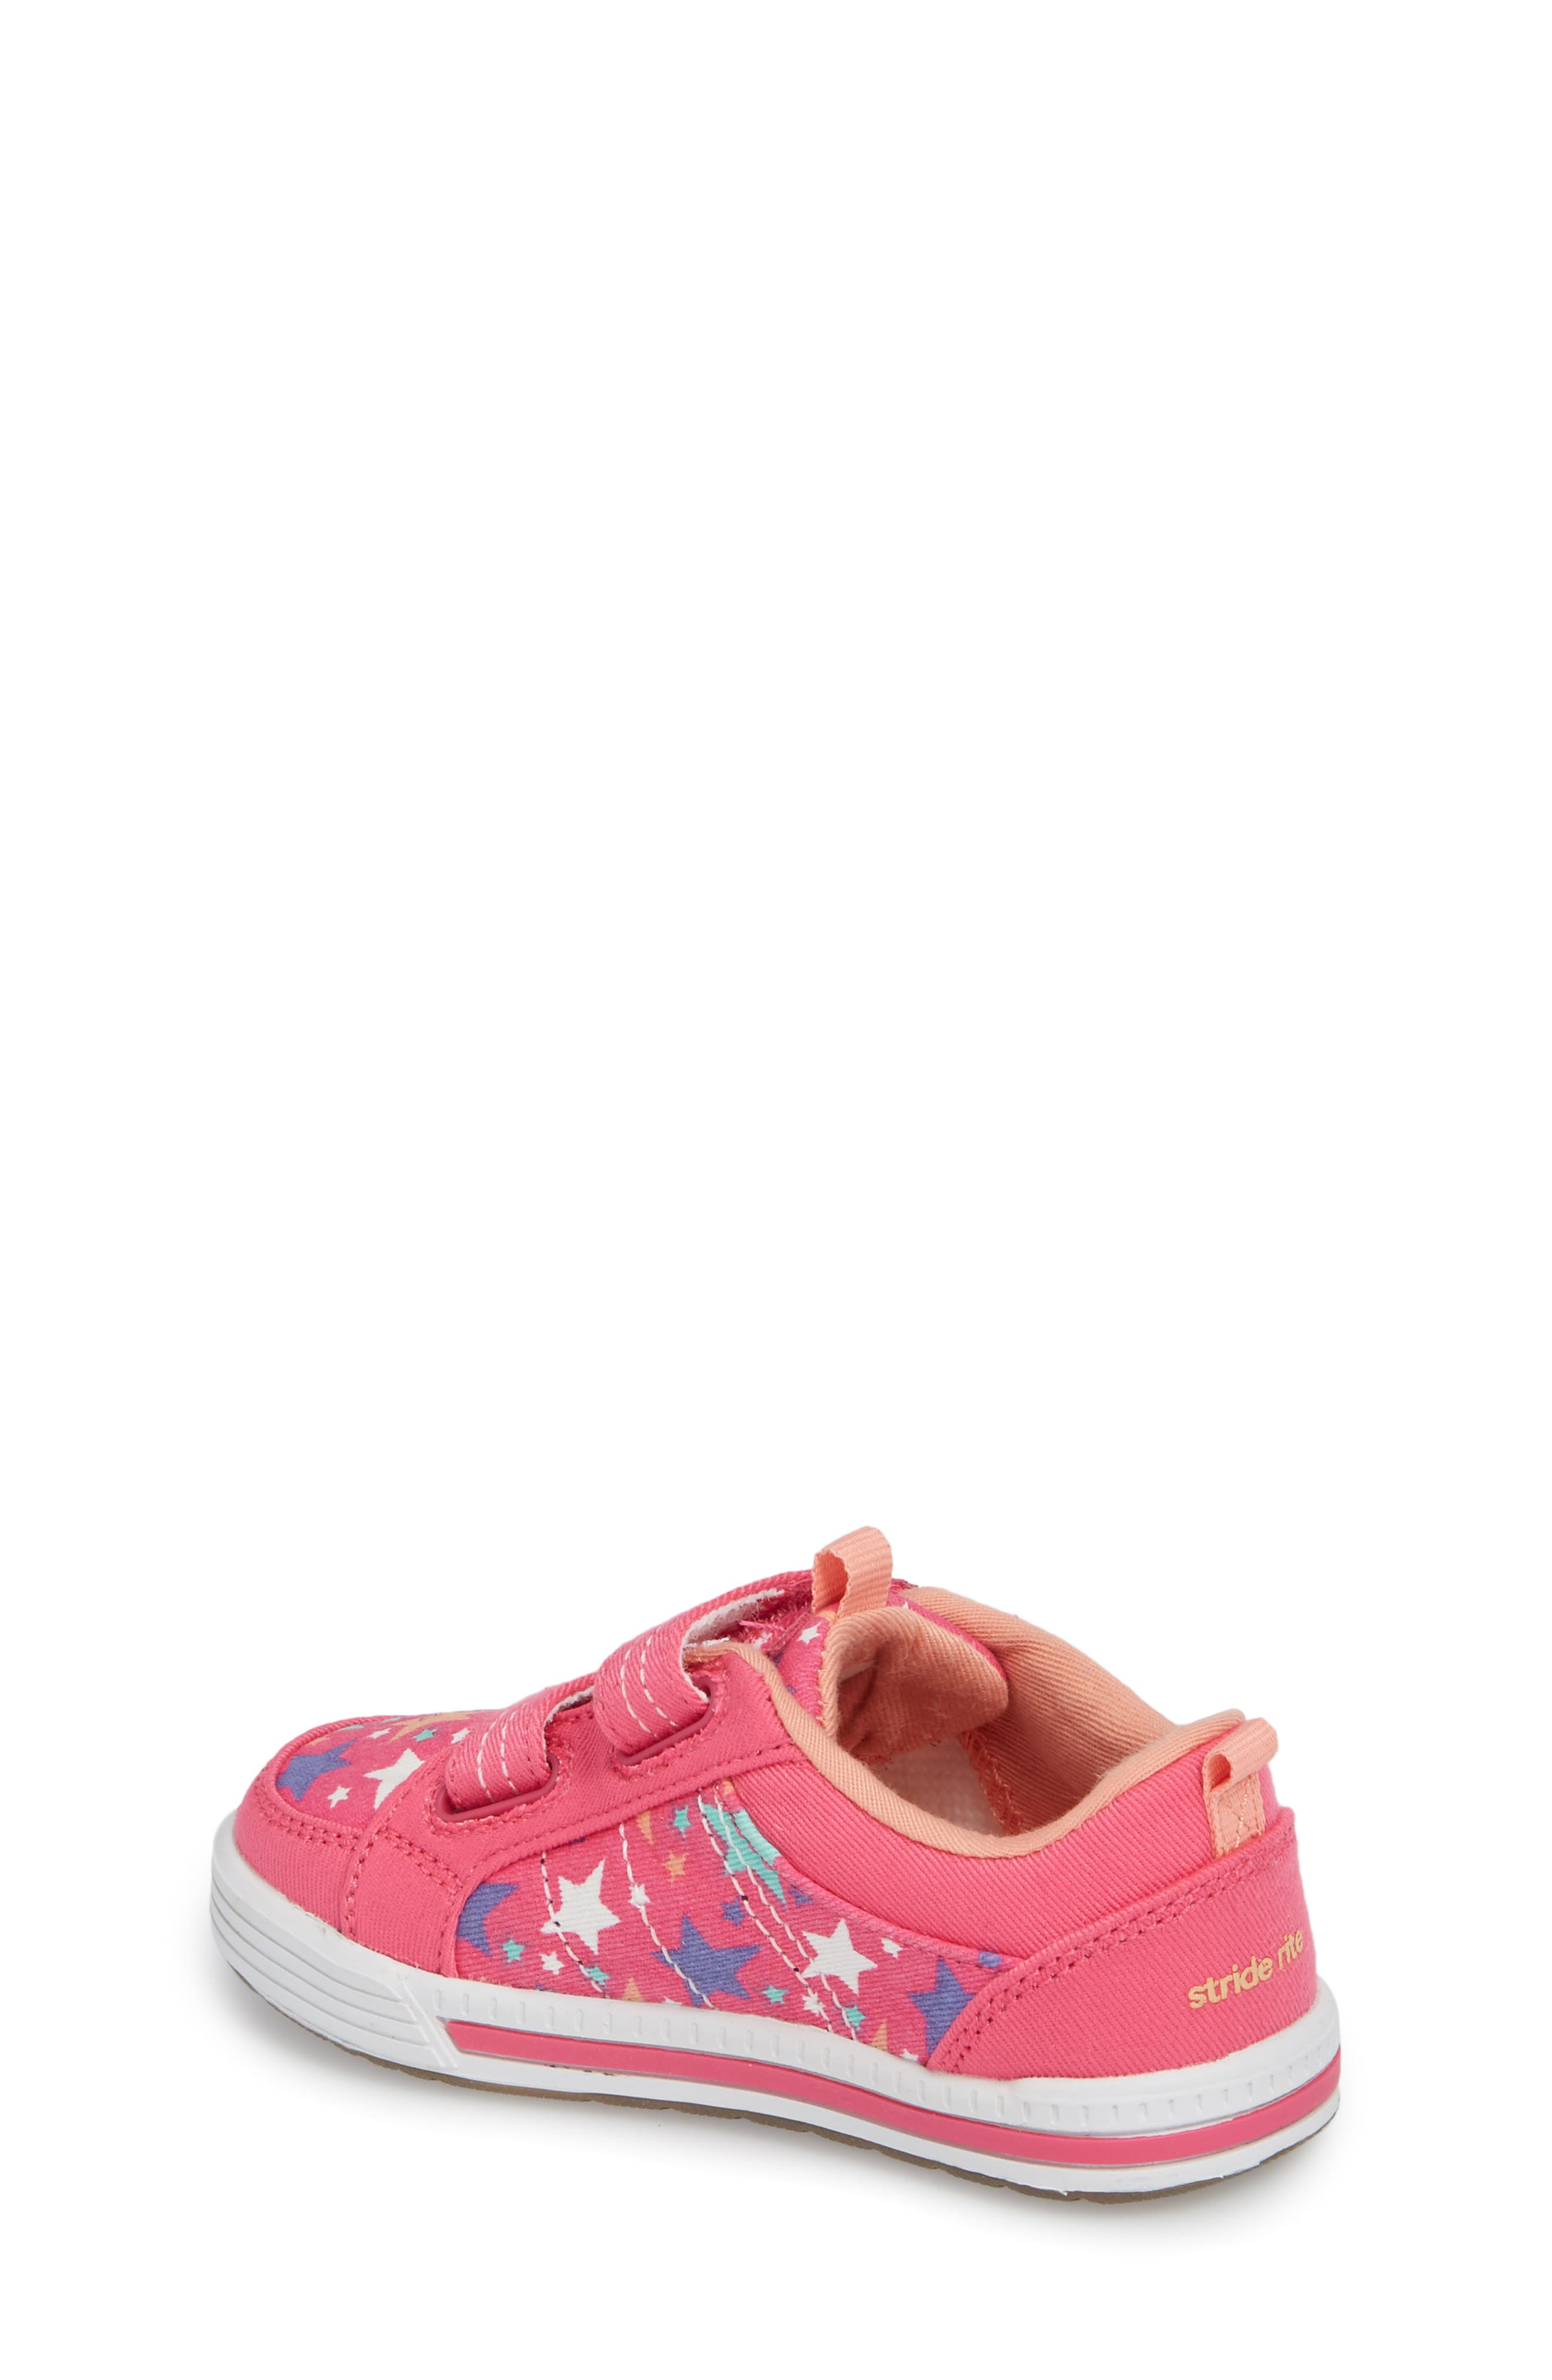 Logan Patterned Sneaker,                             Alternate thumbnail 2, color,                             Pink Star